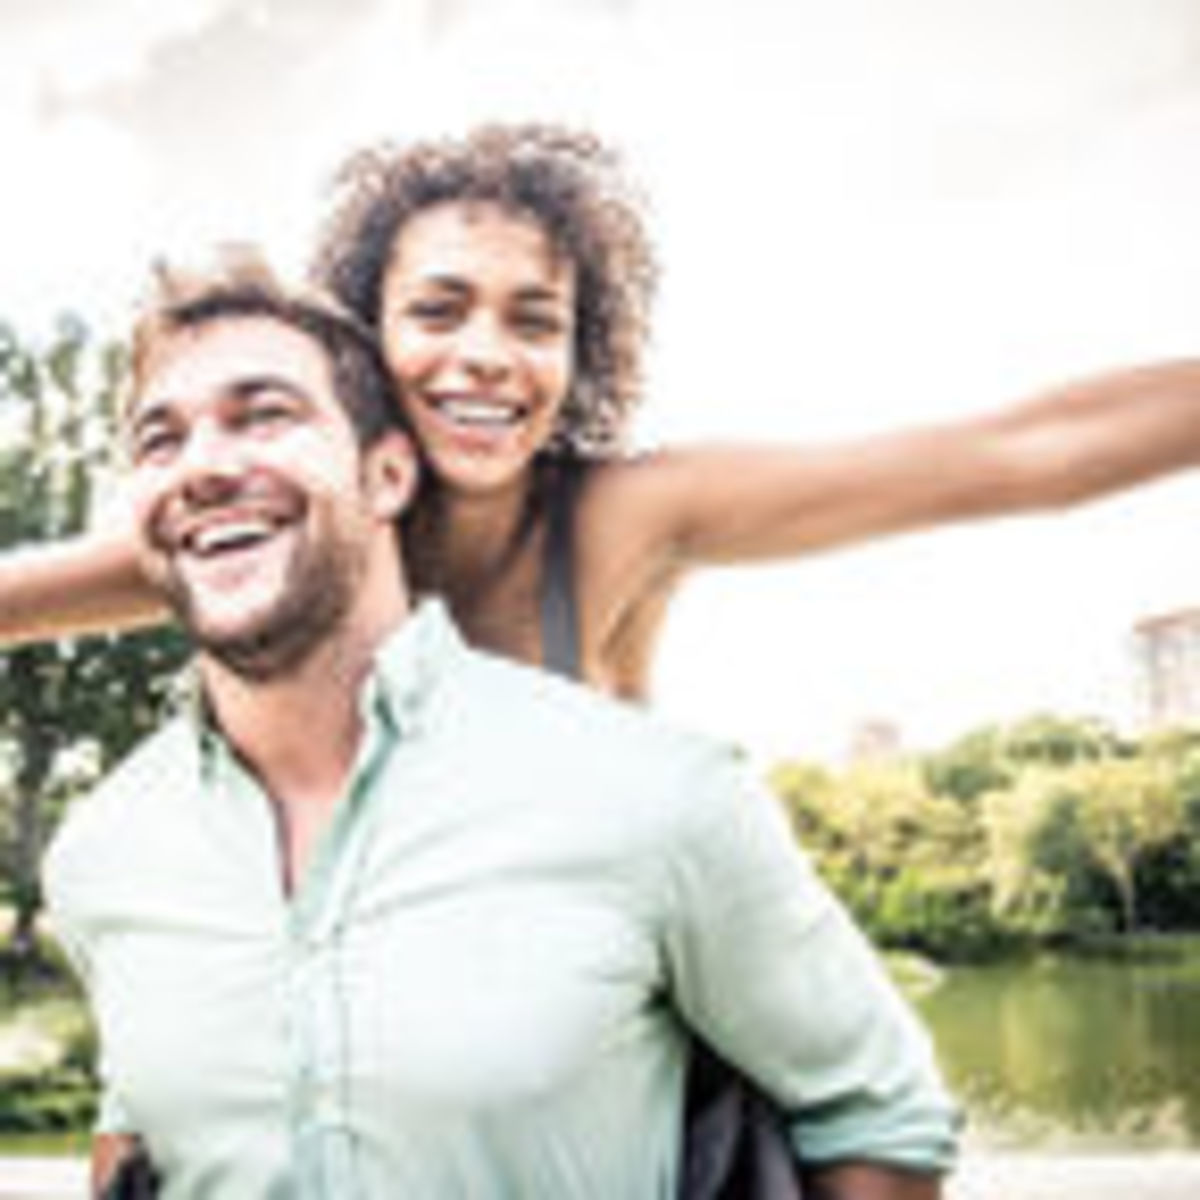 Biracial Dating in a Monoracial Culture | Psychology Today